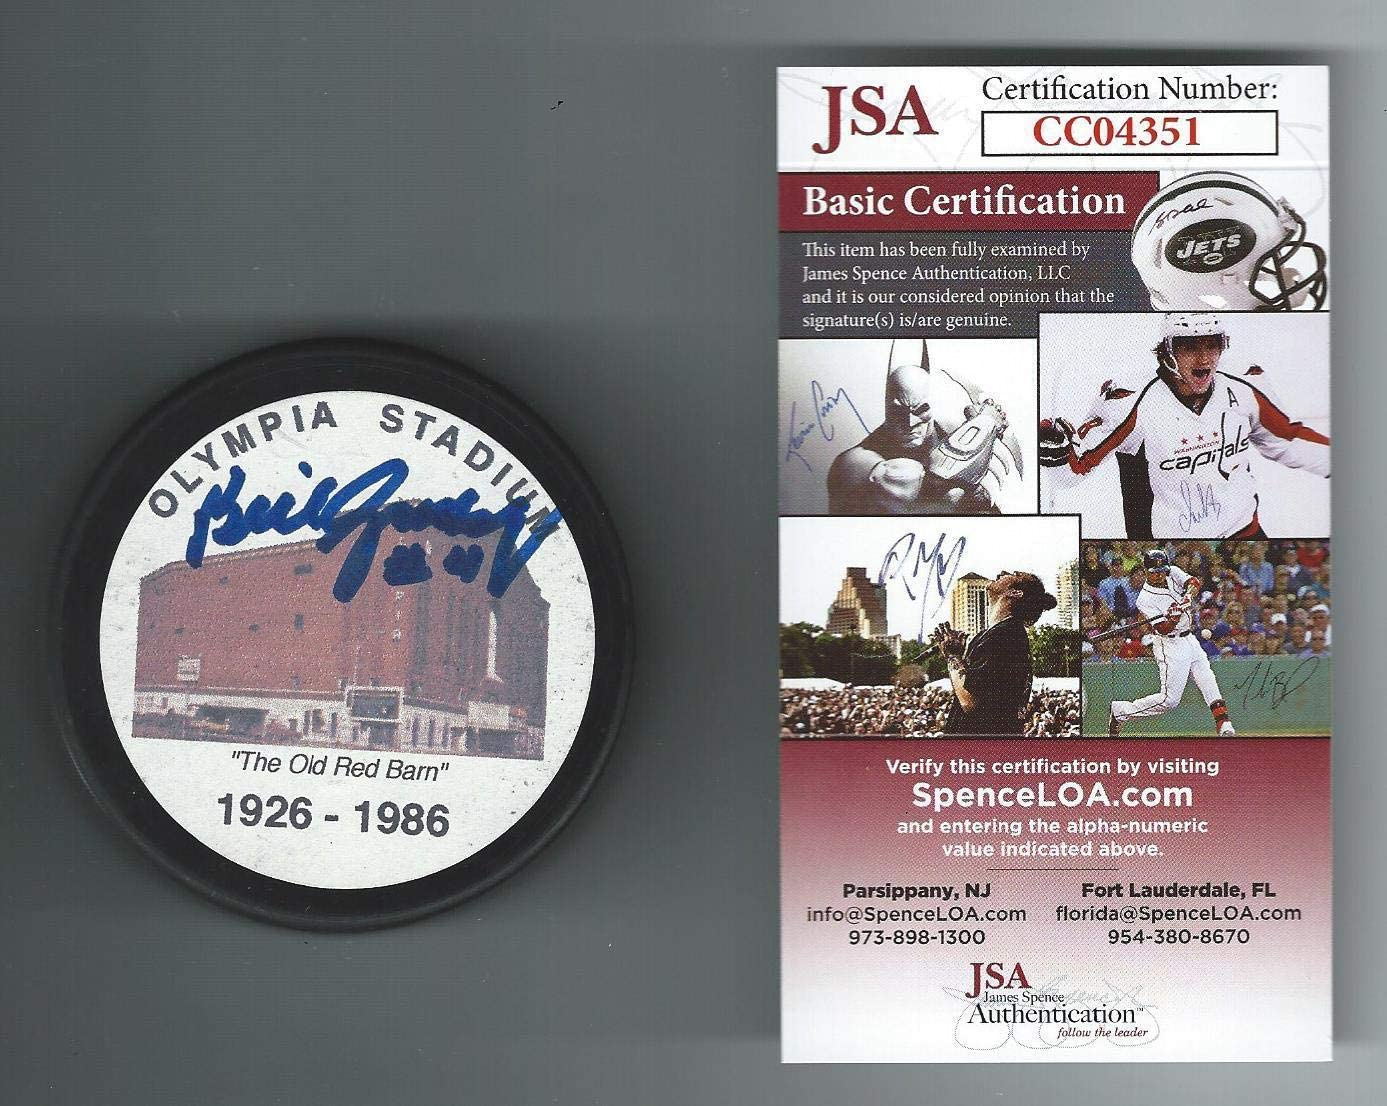 Bill Gadsby Autographed Hockey Puck - Olympia Stadium Authenticated - JSA Certified - Autographed NHL Pucks